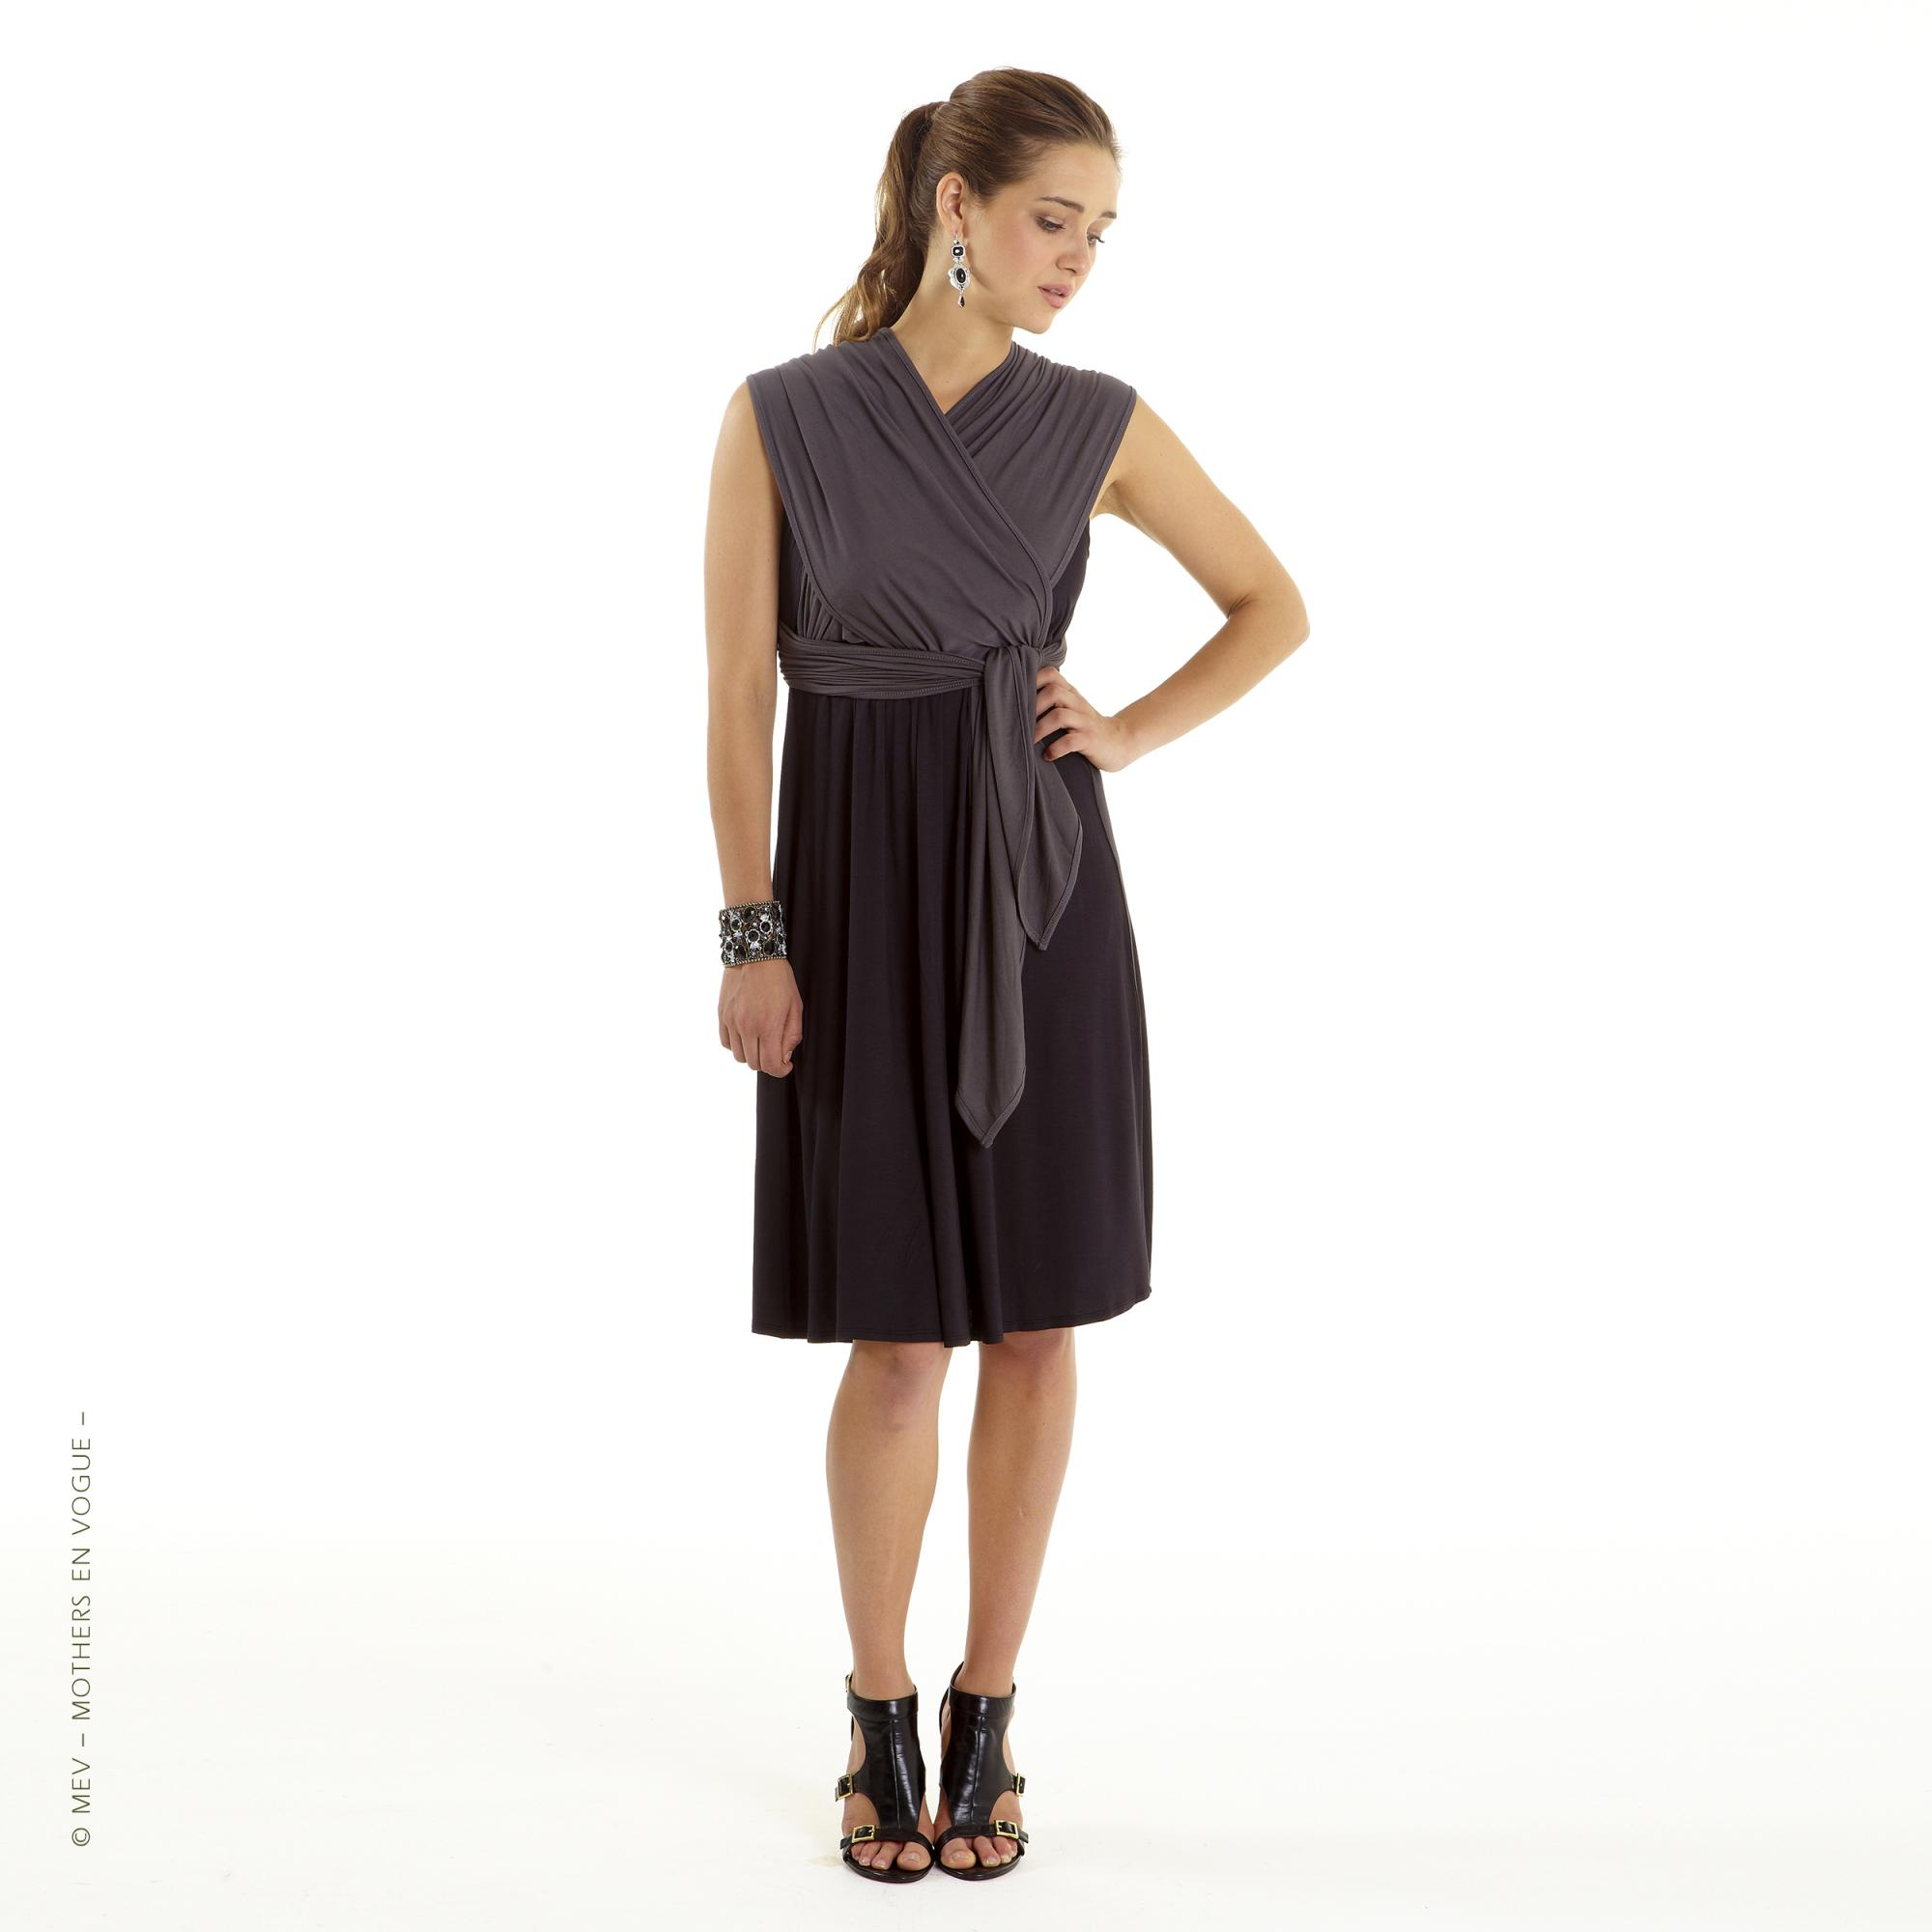 mothers-en-vogue-infinity-wrap-nursing-dress-3.jpg